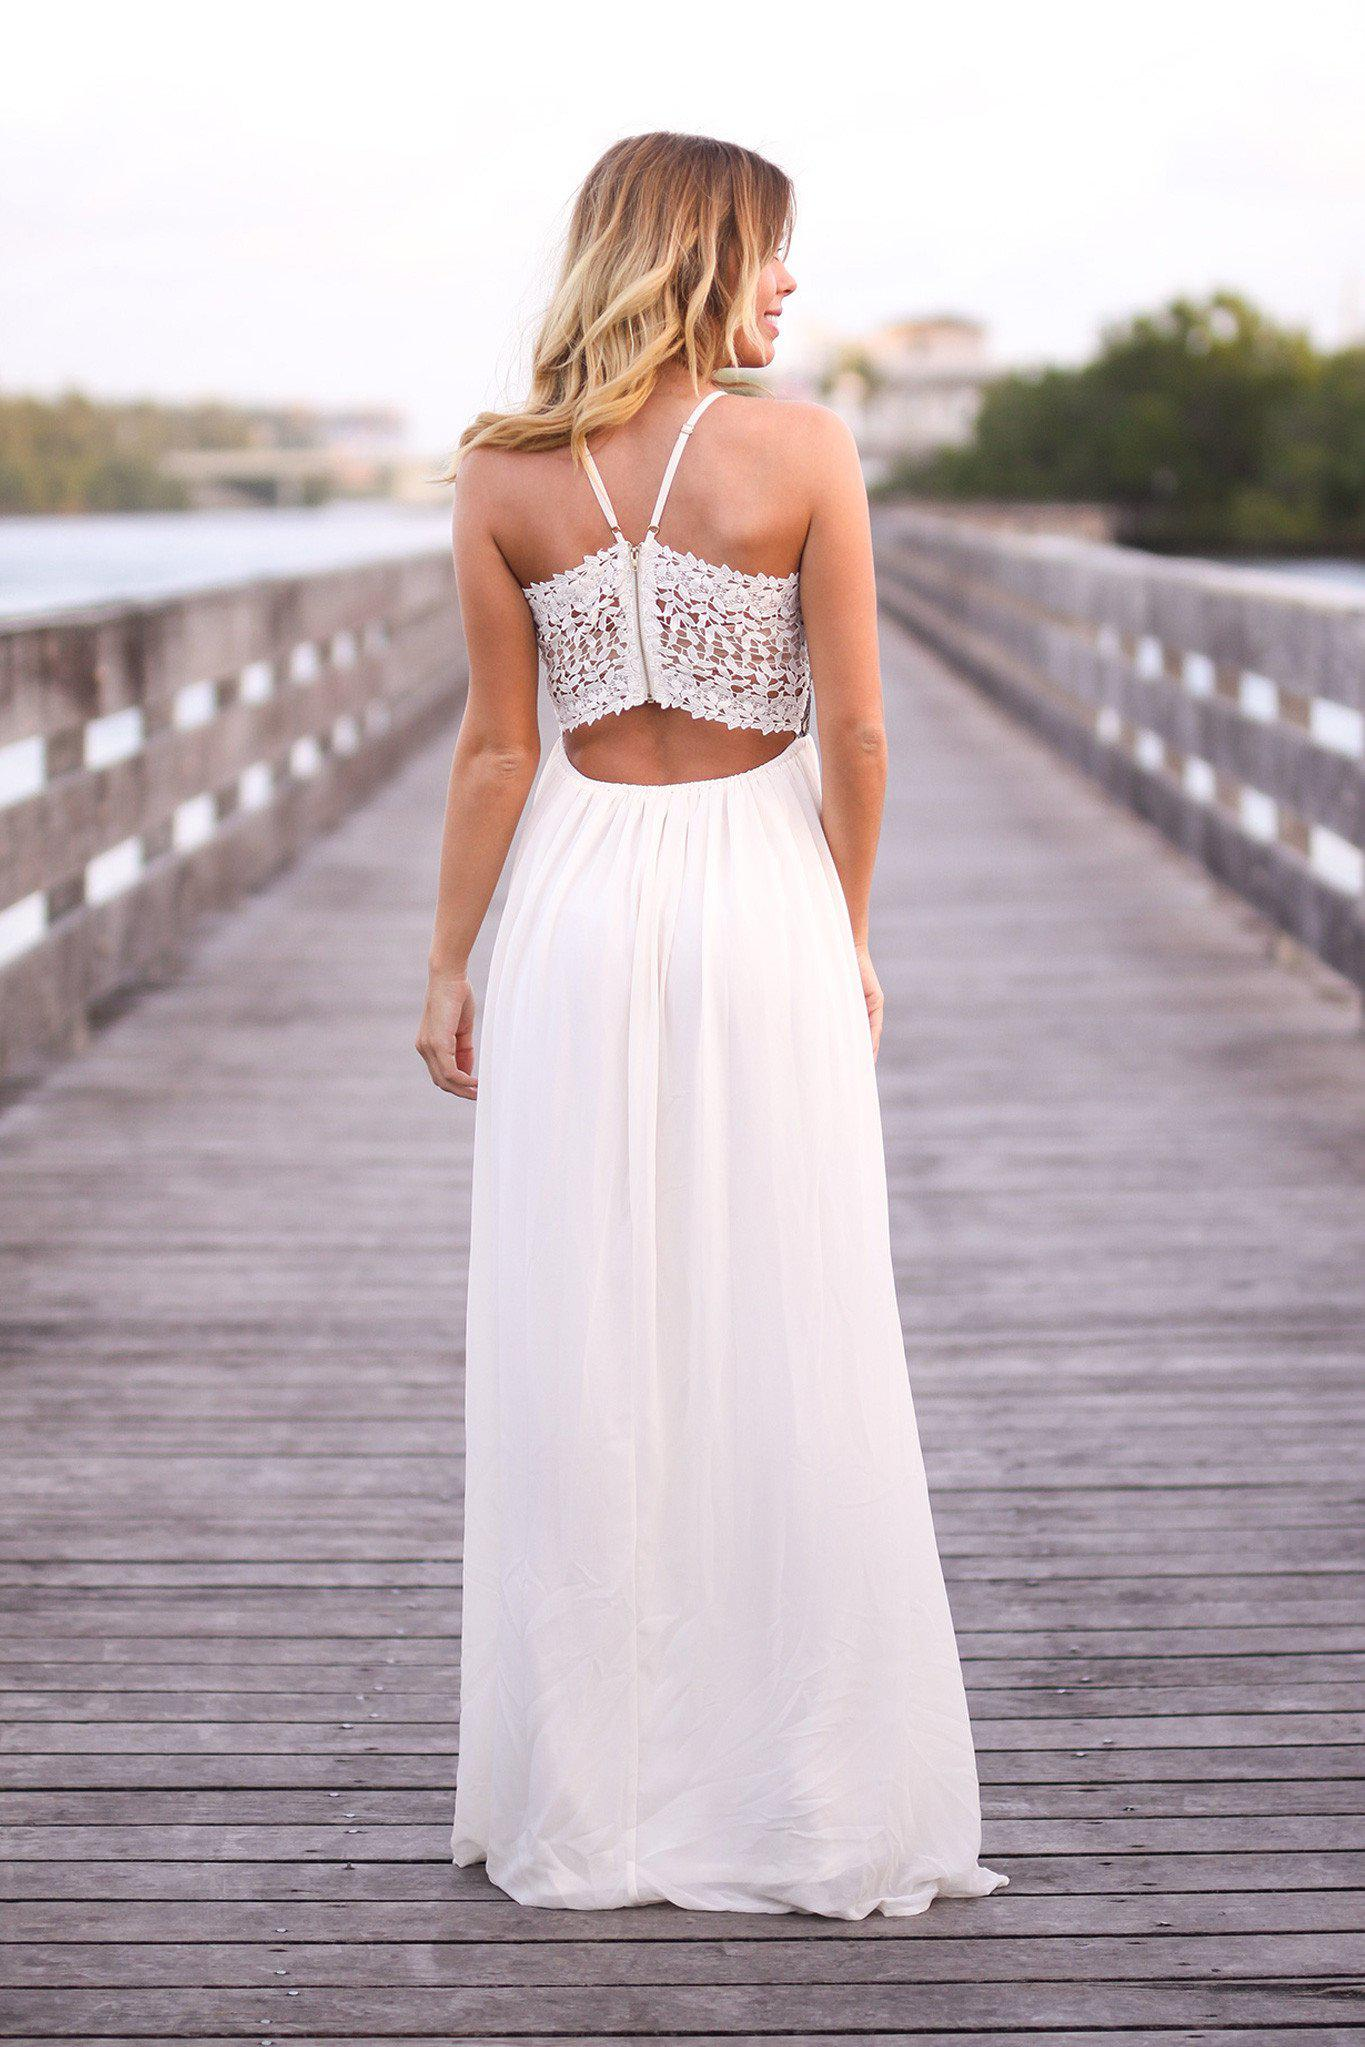 Cream and Black Sequined Maxi Dress with Crochet Back | Maxi Dresses ...